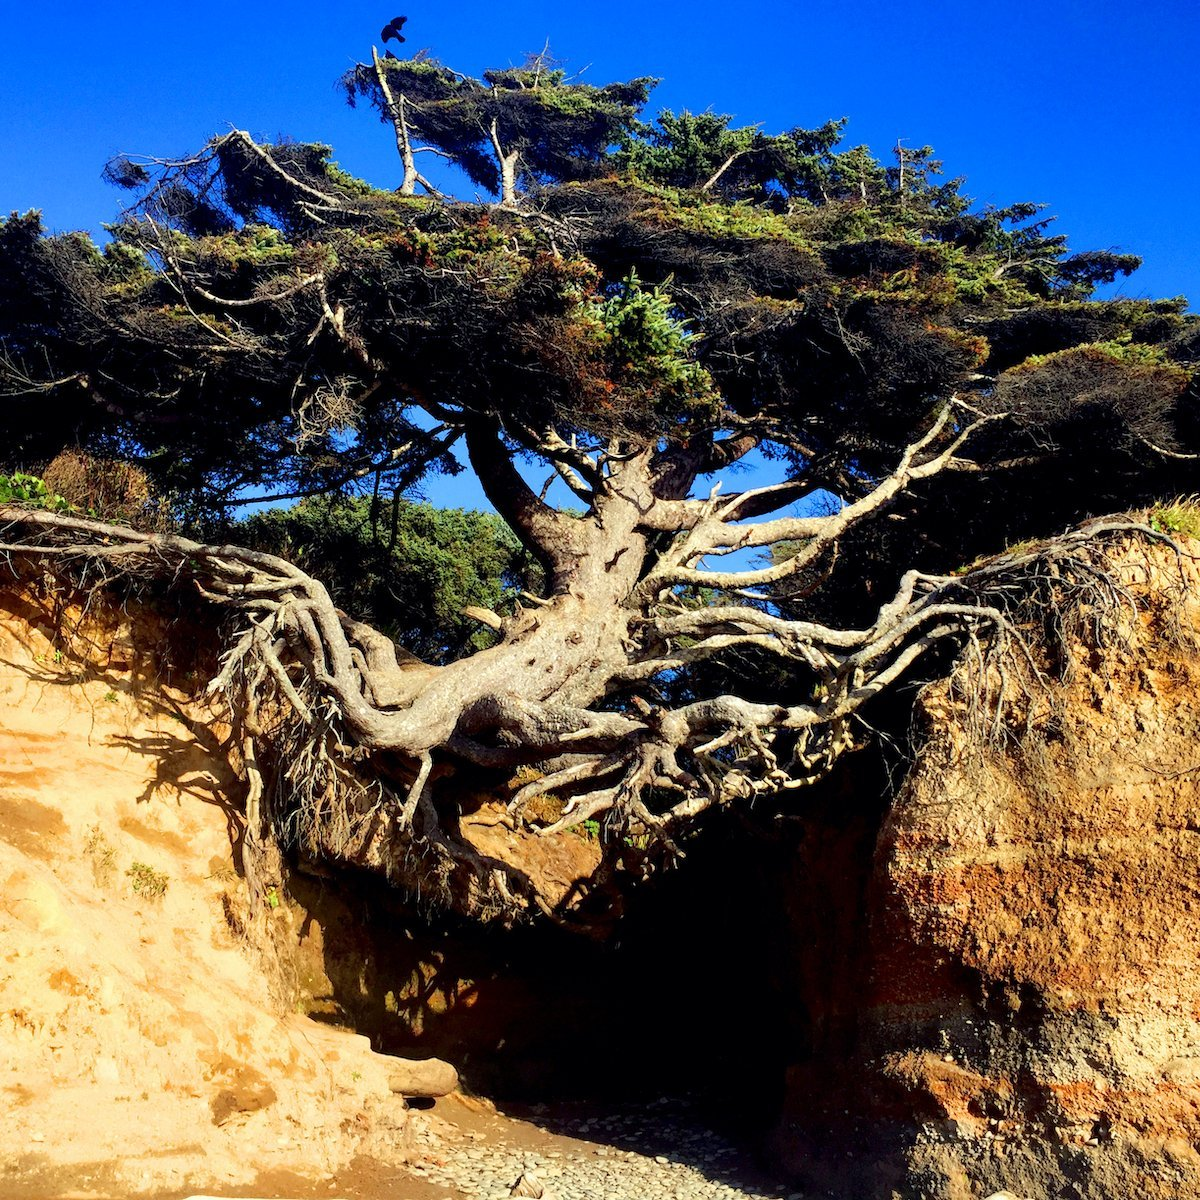 The Tree of Life.